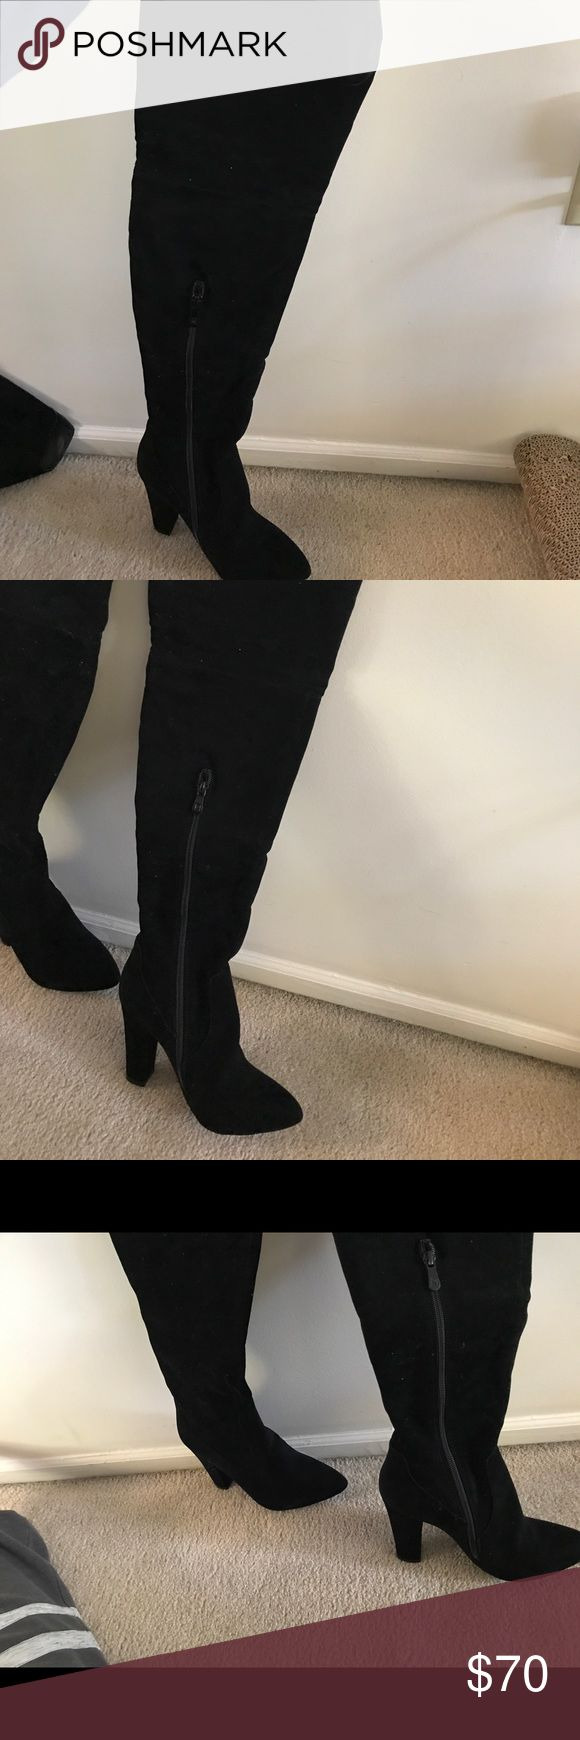 Thigh High Suede Boots Thigh High Boots Black Suede US SIZE 5 UK SIZE 3 Public Desire Shoes Over the Knee Boots